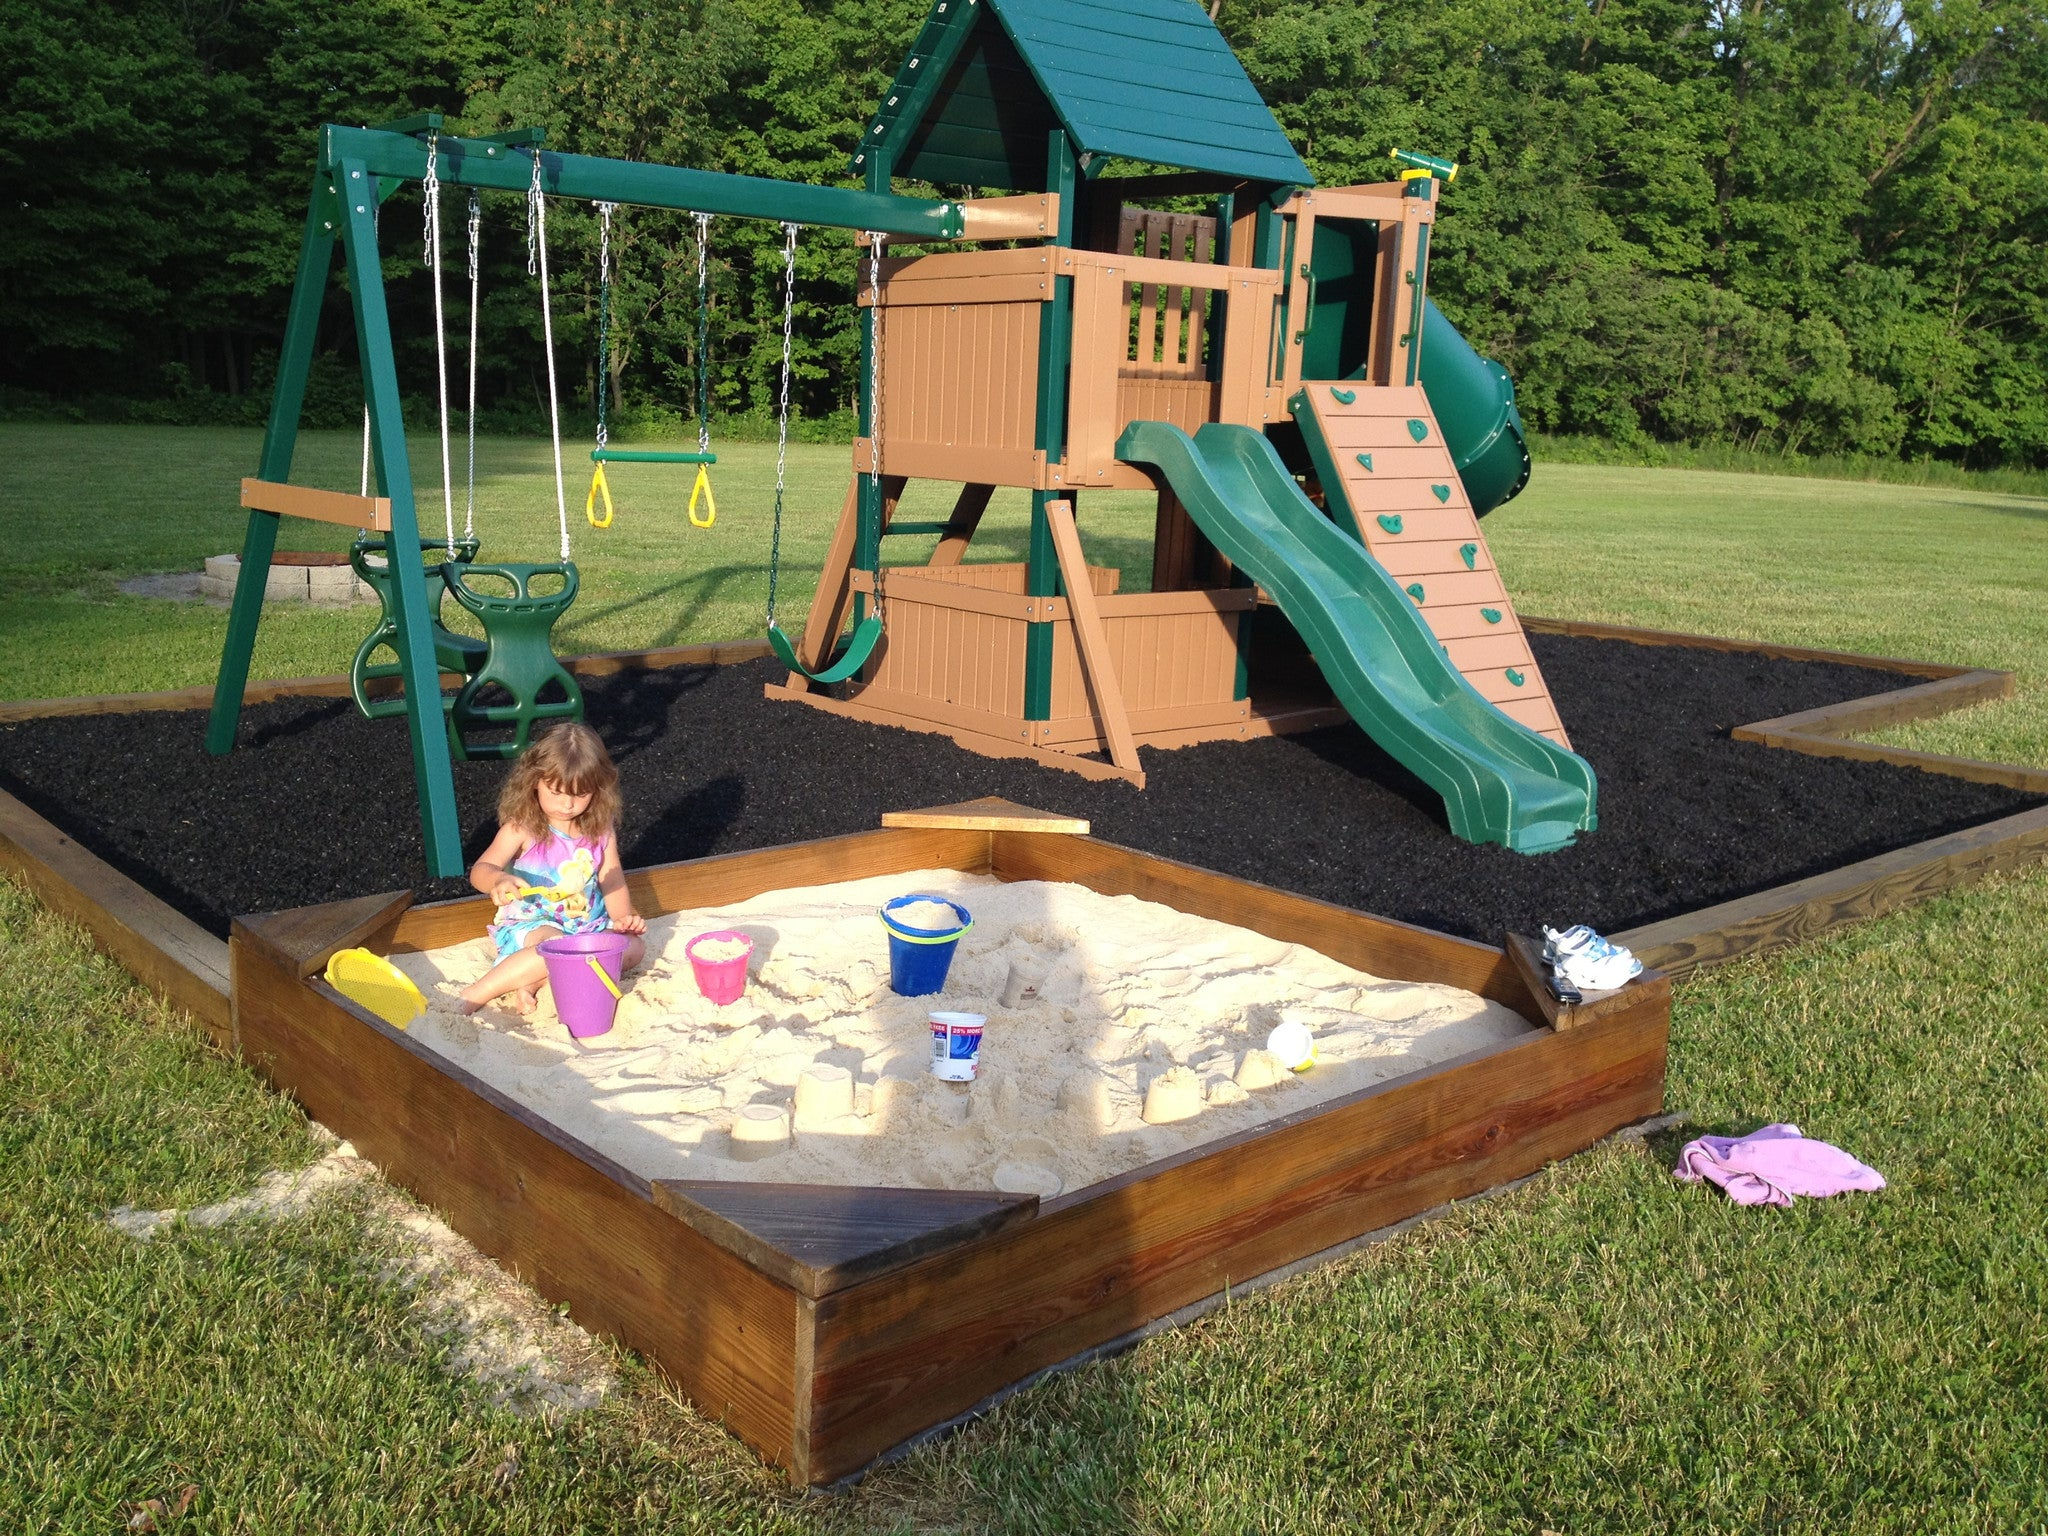 Playsafer® Black Rubber Mulch   Dyed Solid (ASTM F 3012 CERTIFIED)